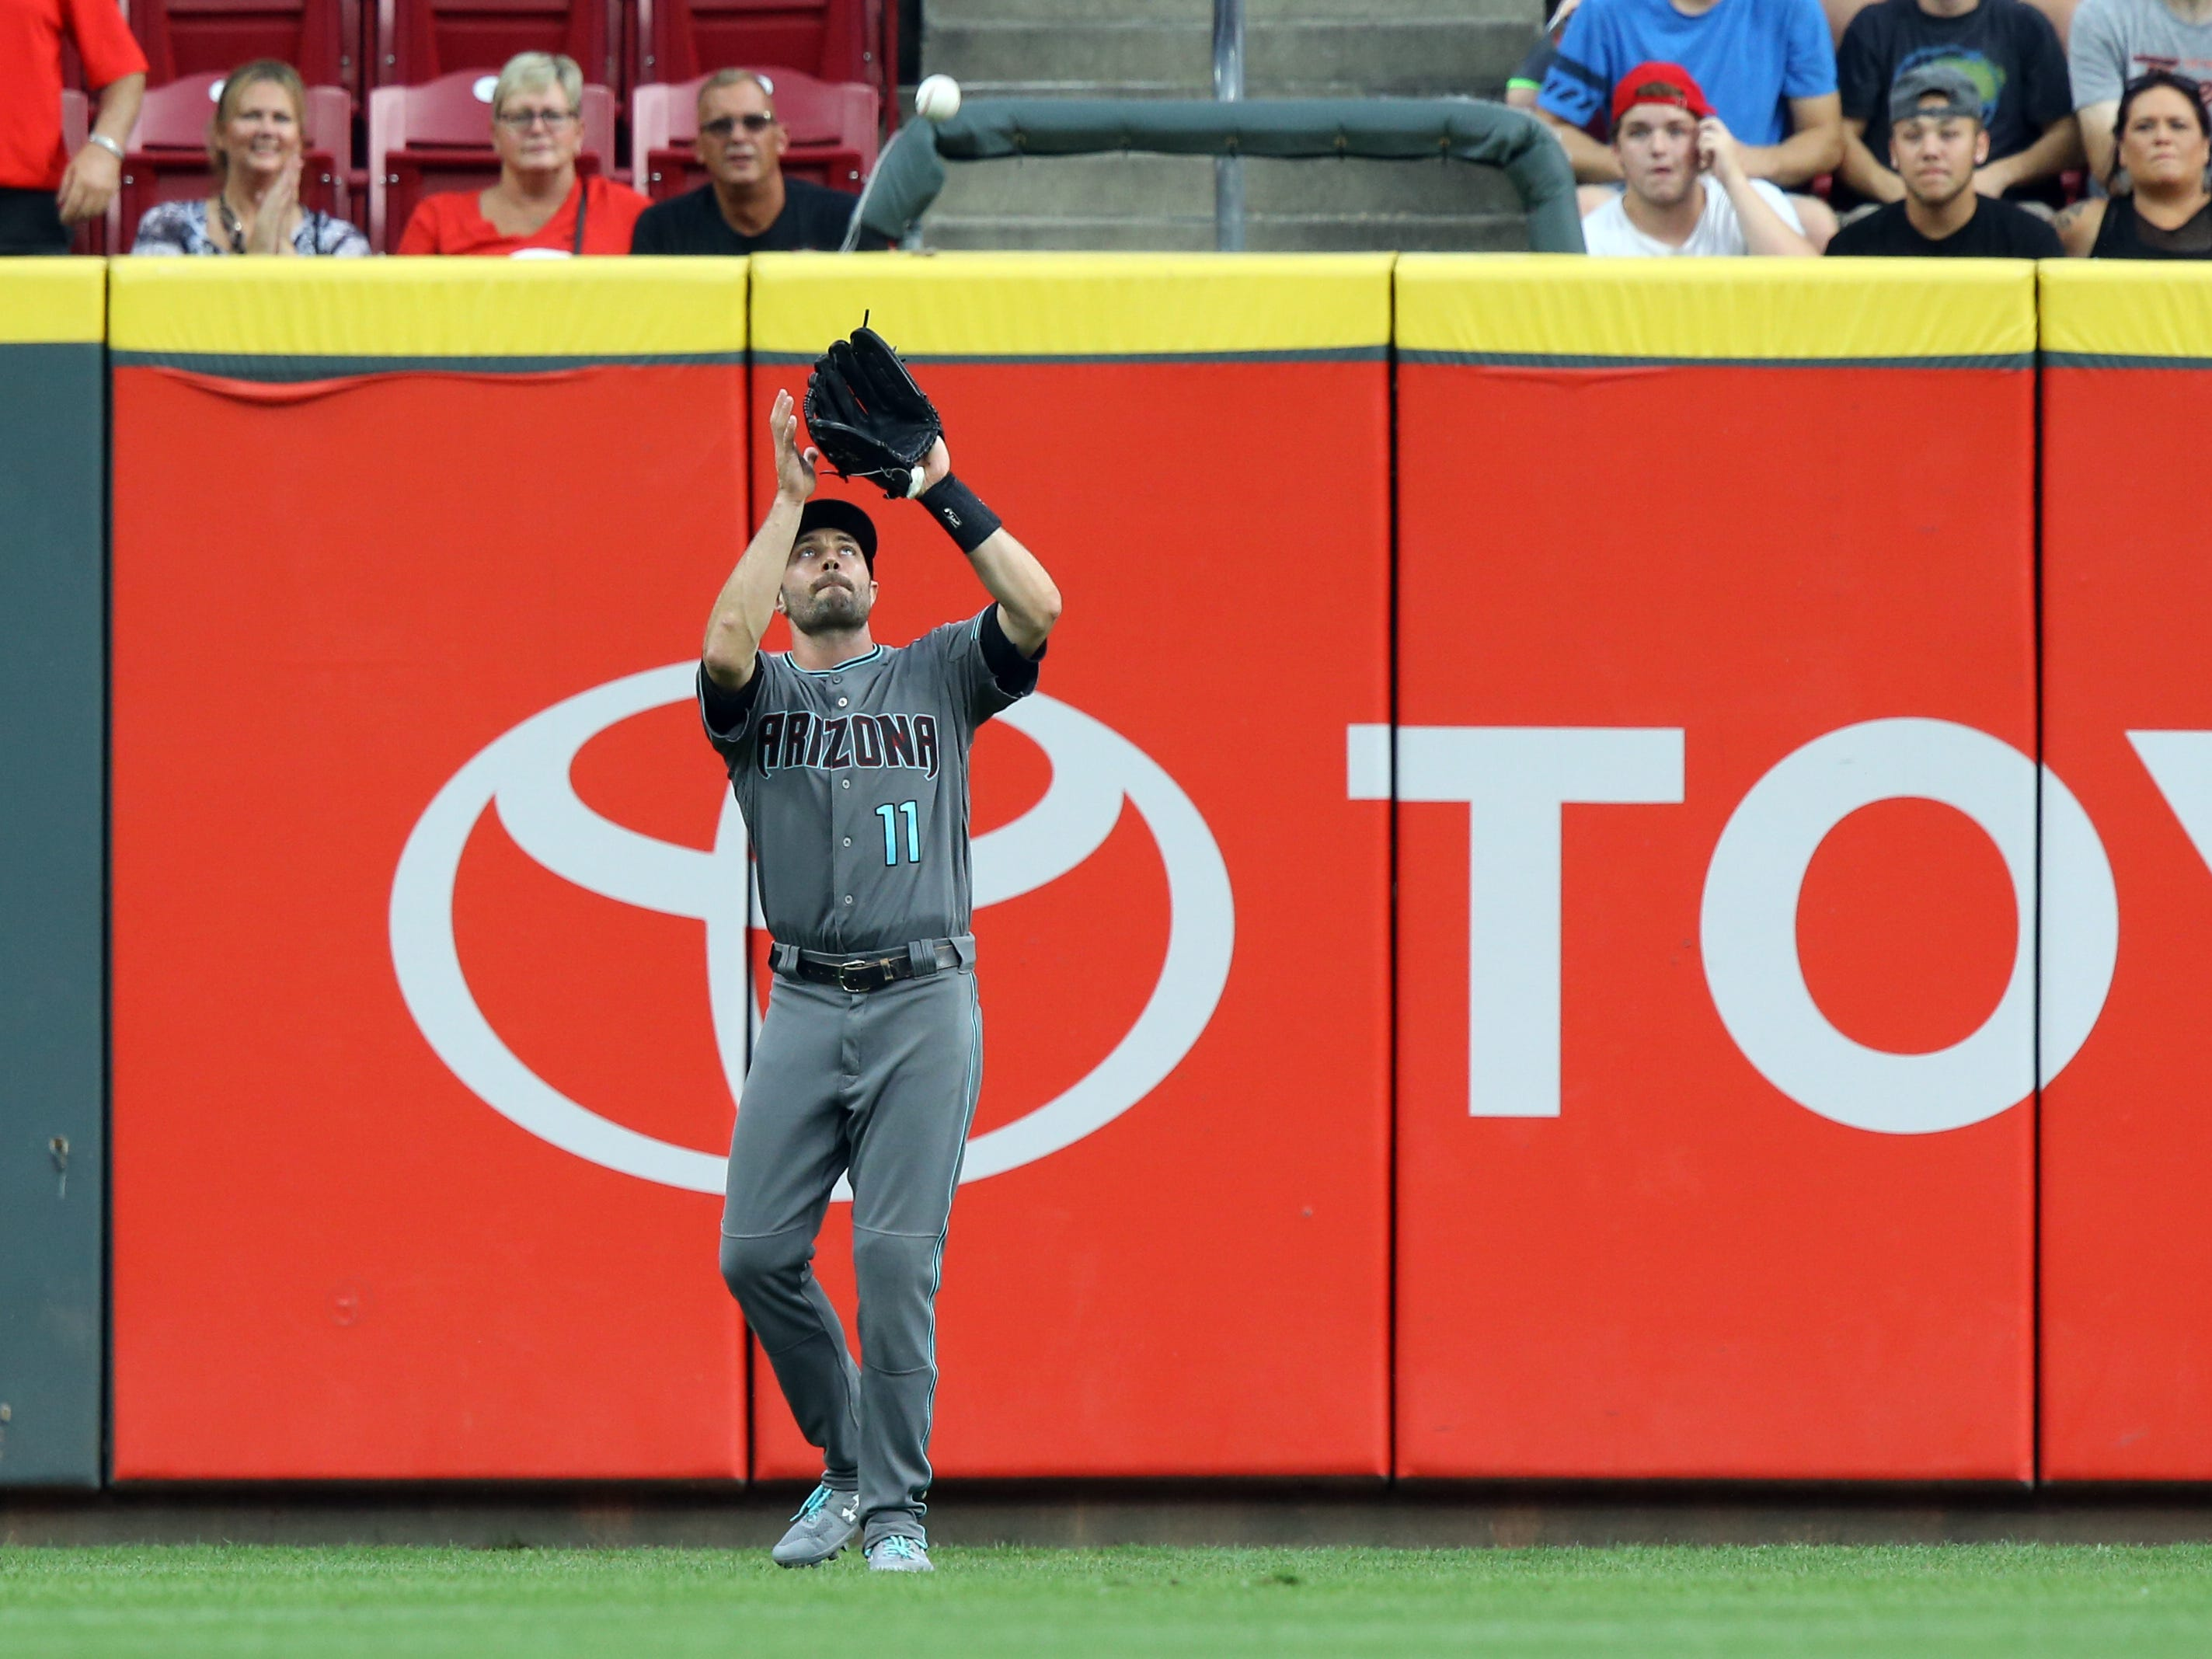 Aug 10, 2018; Cincinnati, OH, USA; Arizona Diamondbacks center fielder A.J. Pollock (11) catches a fly ball hit by Cincinnati Reds second baseman Jose Peraza (not pictured) in the first inning at Great American Ball Park.